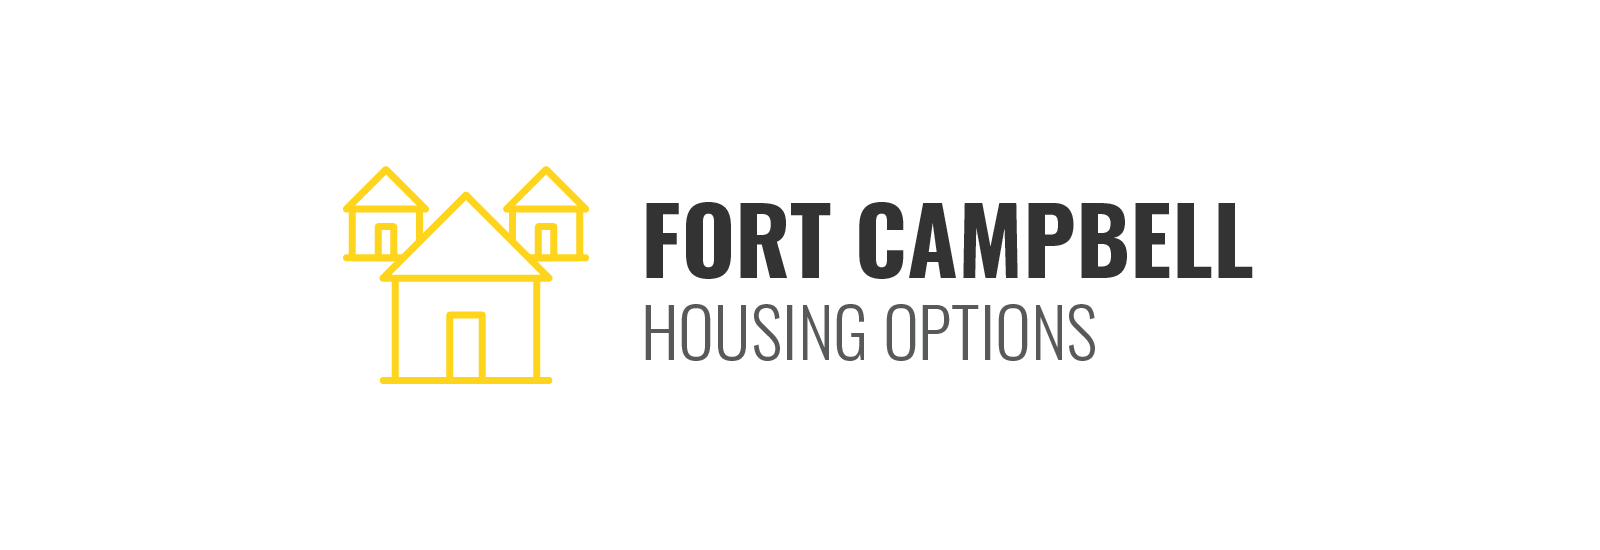 Fort Cambell Housing Options